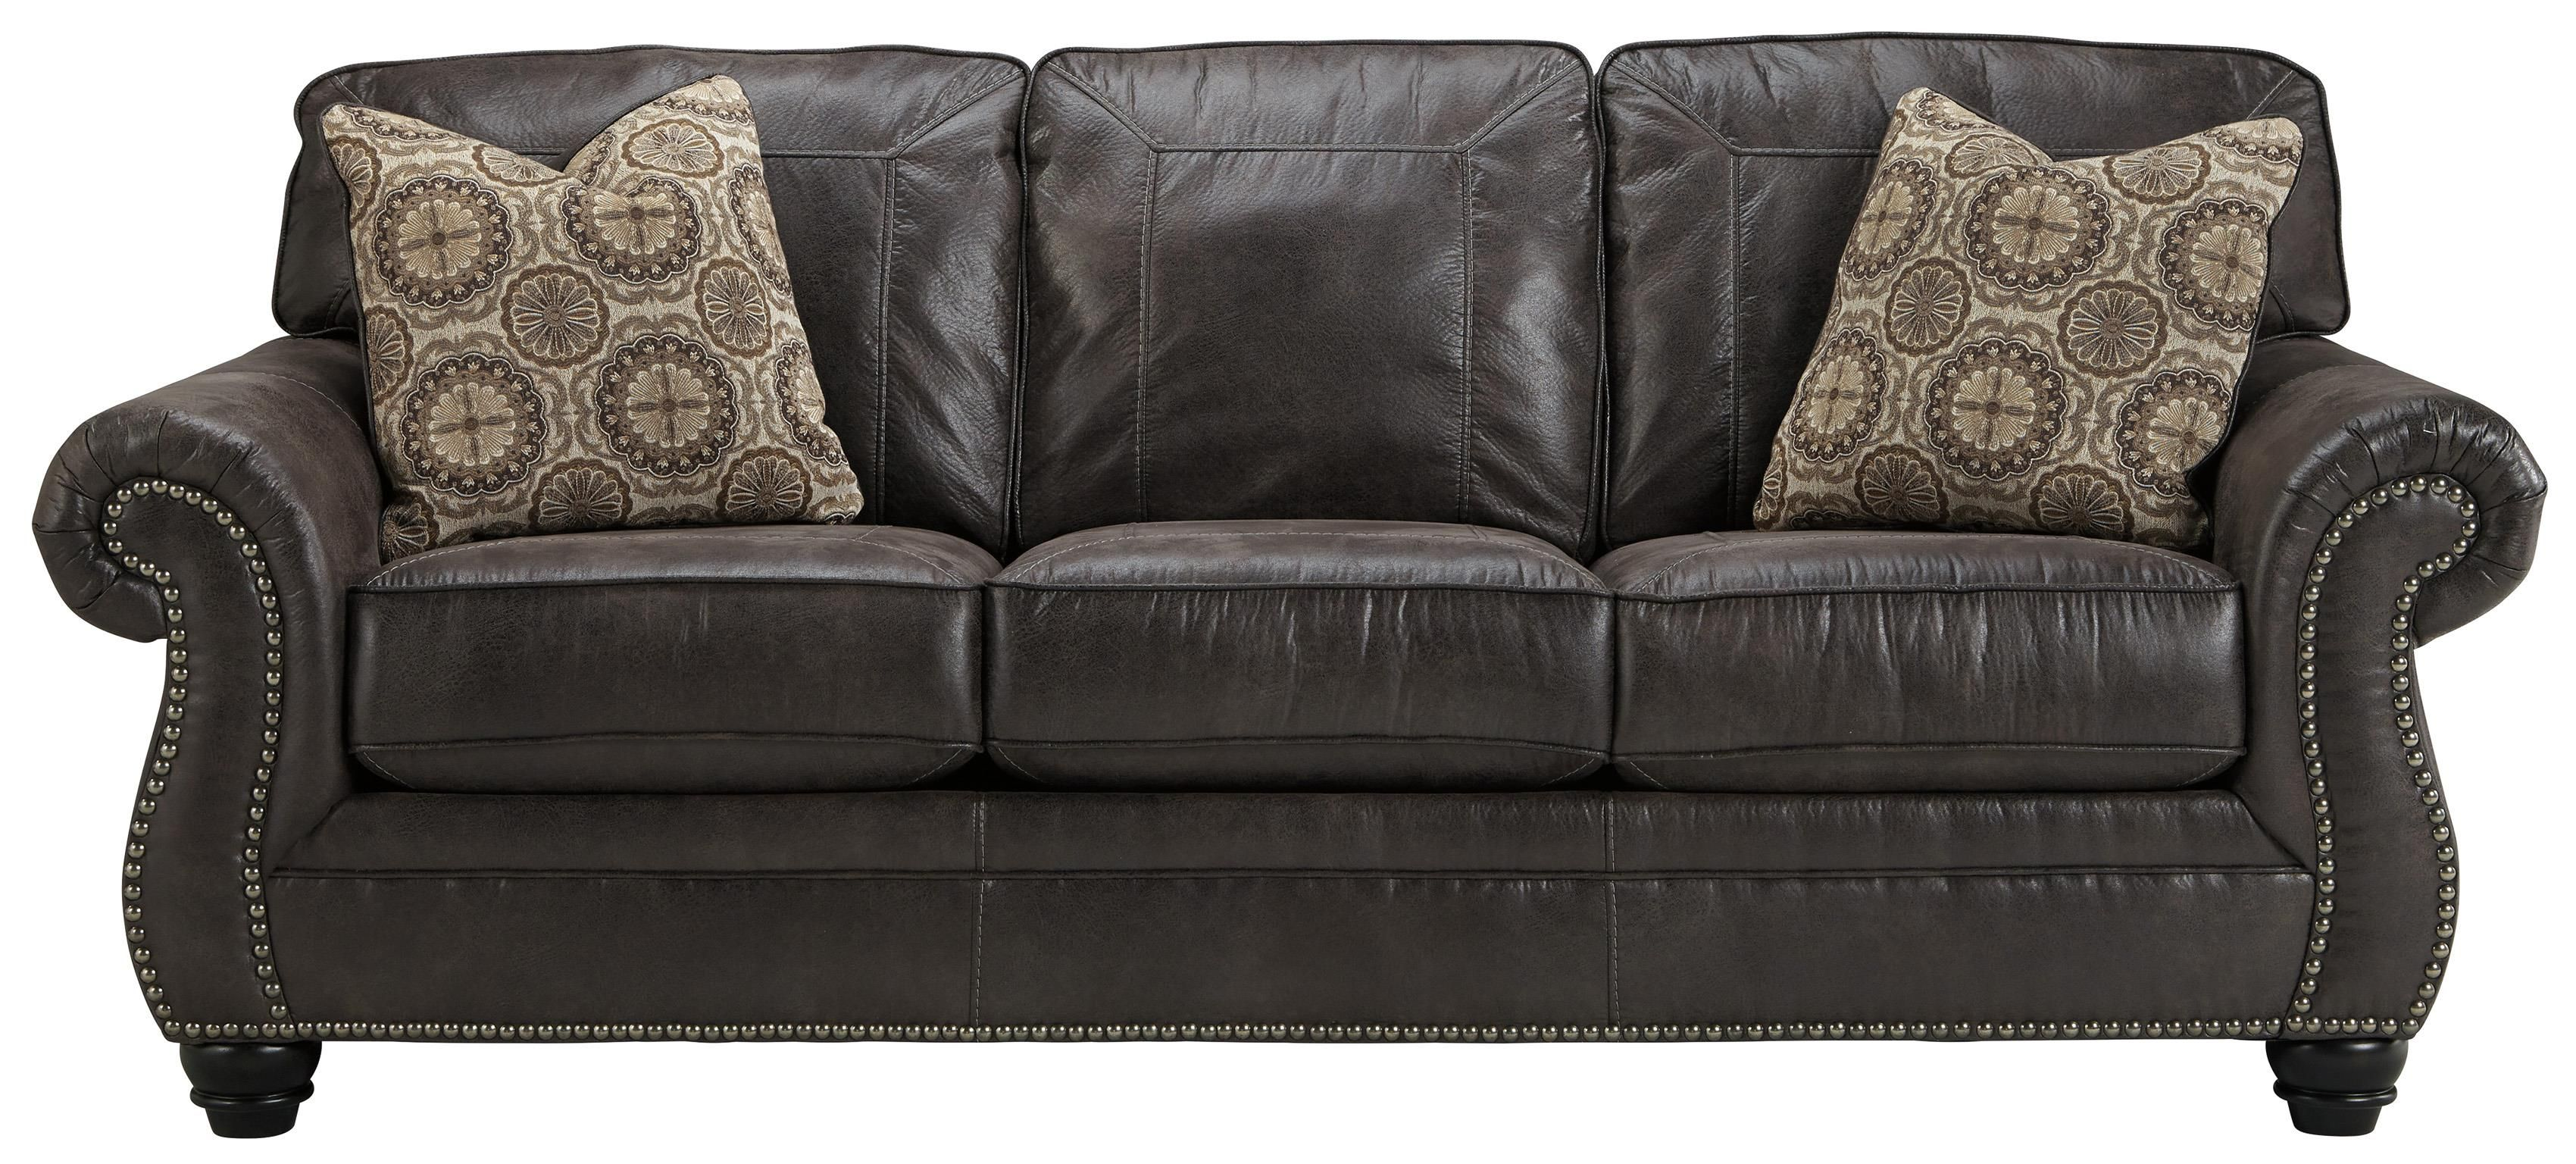 Recliner Sofa Faux Leather Queen Sofa Sleeper with Rolled Arms and Nailhead Trim